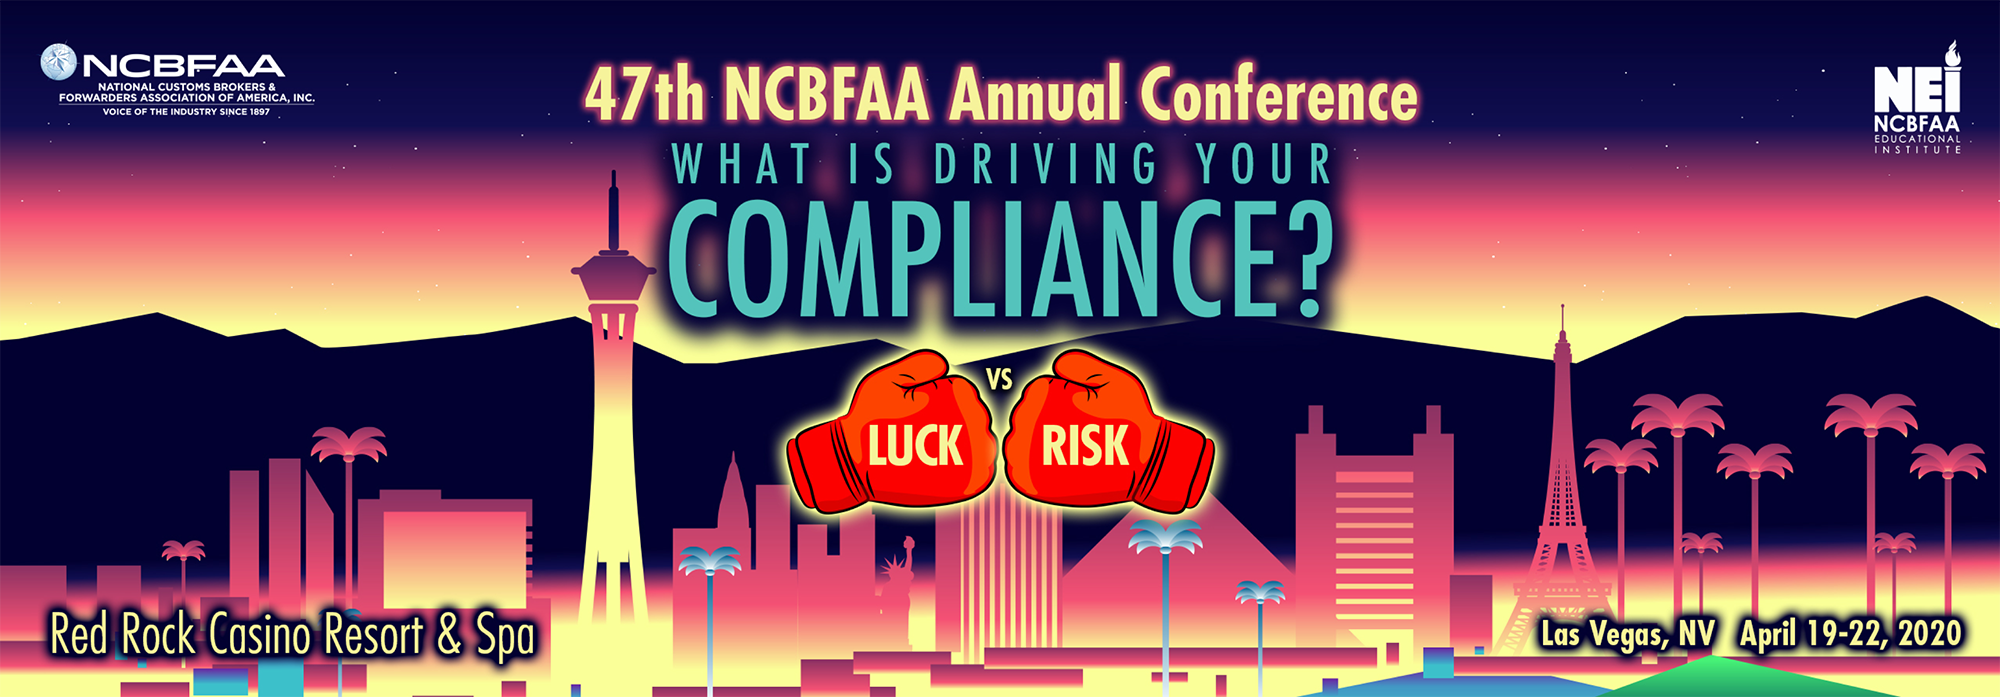 NCBFAA 47th Annual Conference - Las Vegas, NV @ Red Rock Casino, Resort & Spa